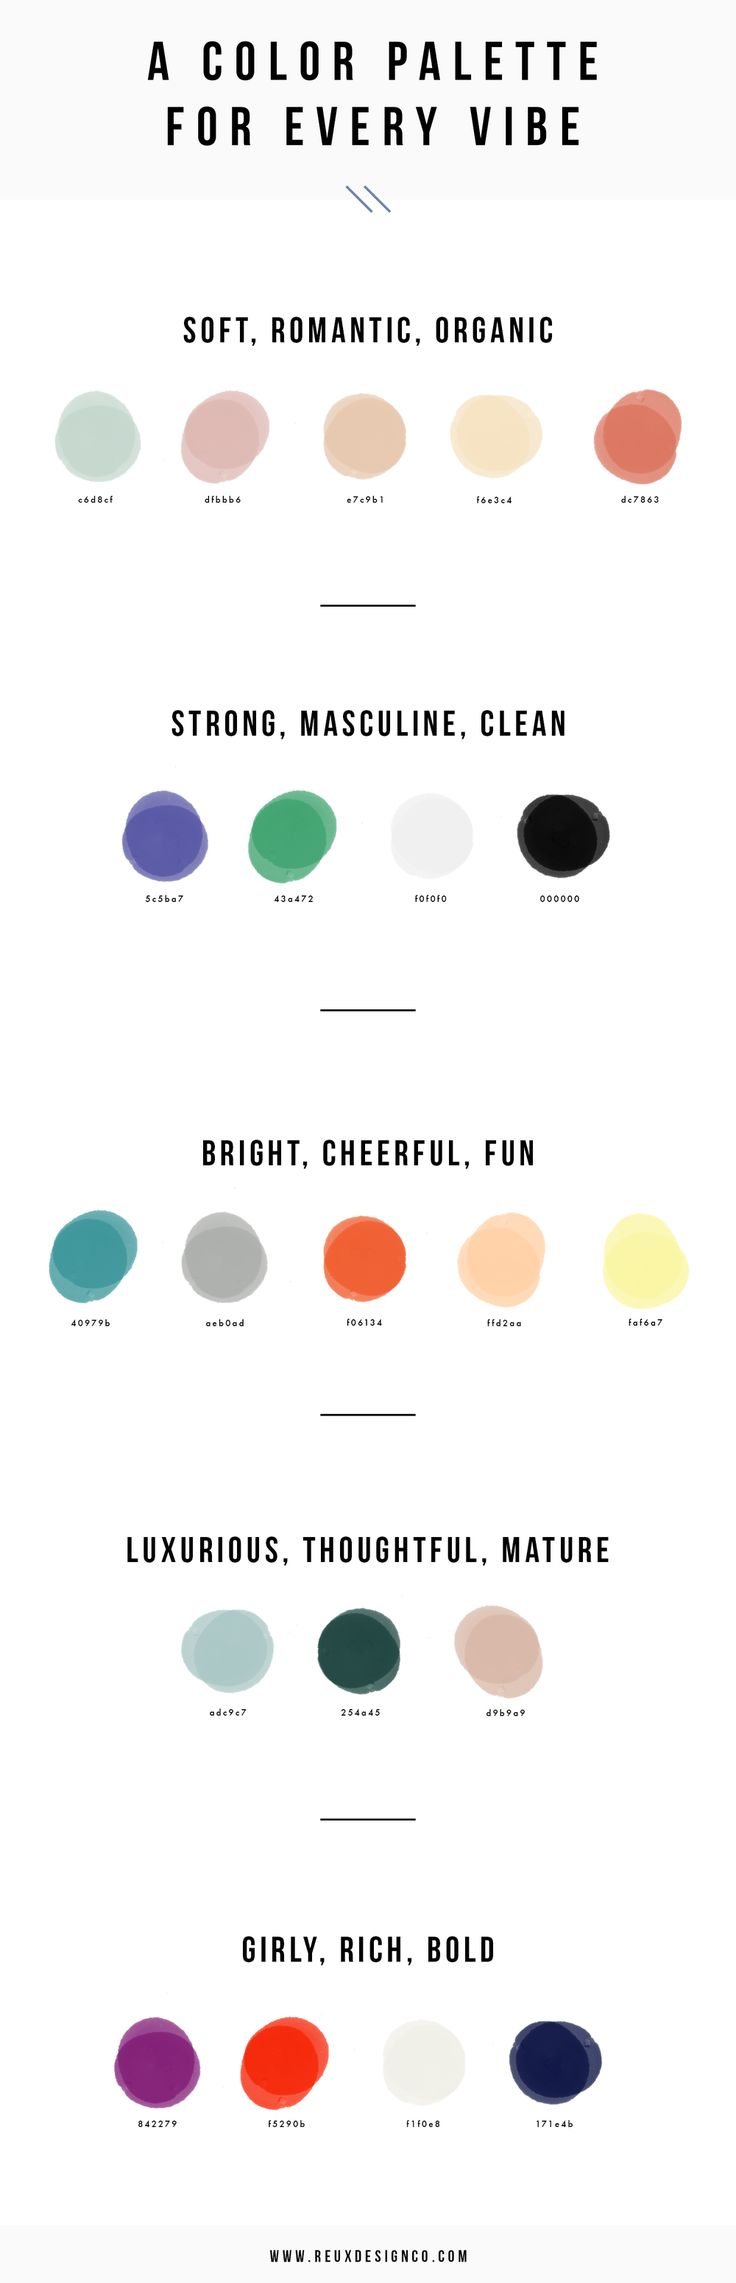 Color palette ideas | branding guide | Defining a Color Palette for Your Brand — Reux Design Co.